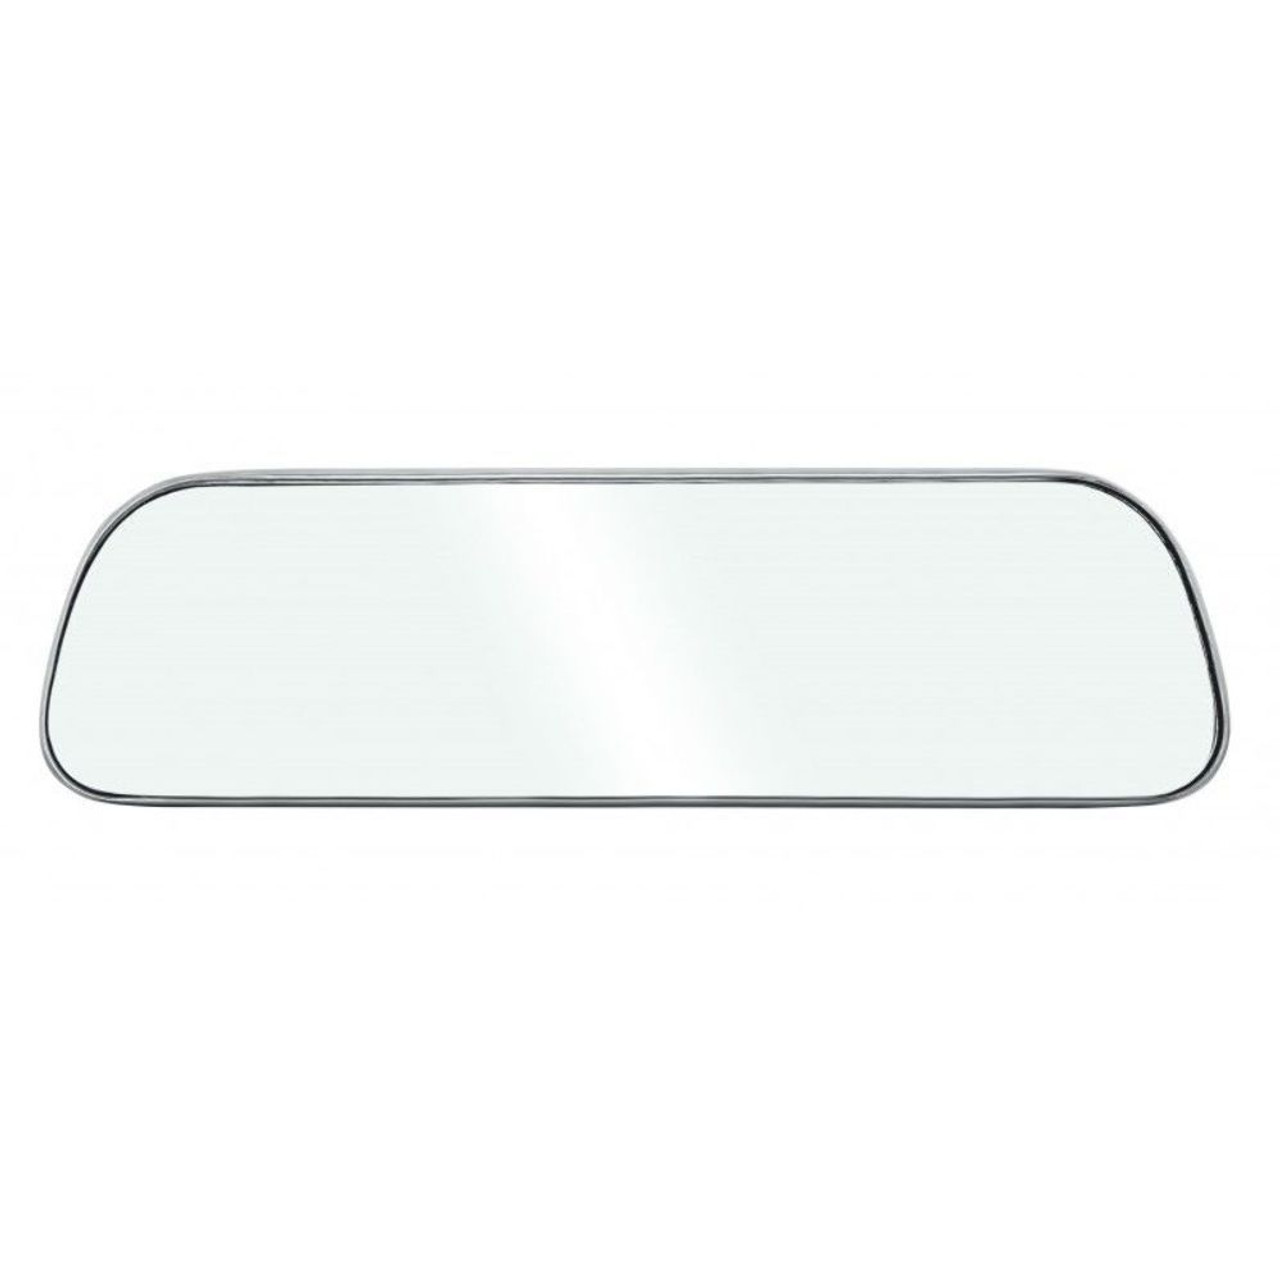 1964-67 Chevelle & El Camino, 1963-66 Impala / Caprice Chrome Rear View Mirror